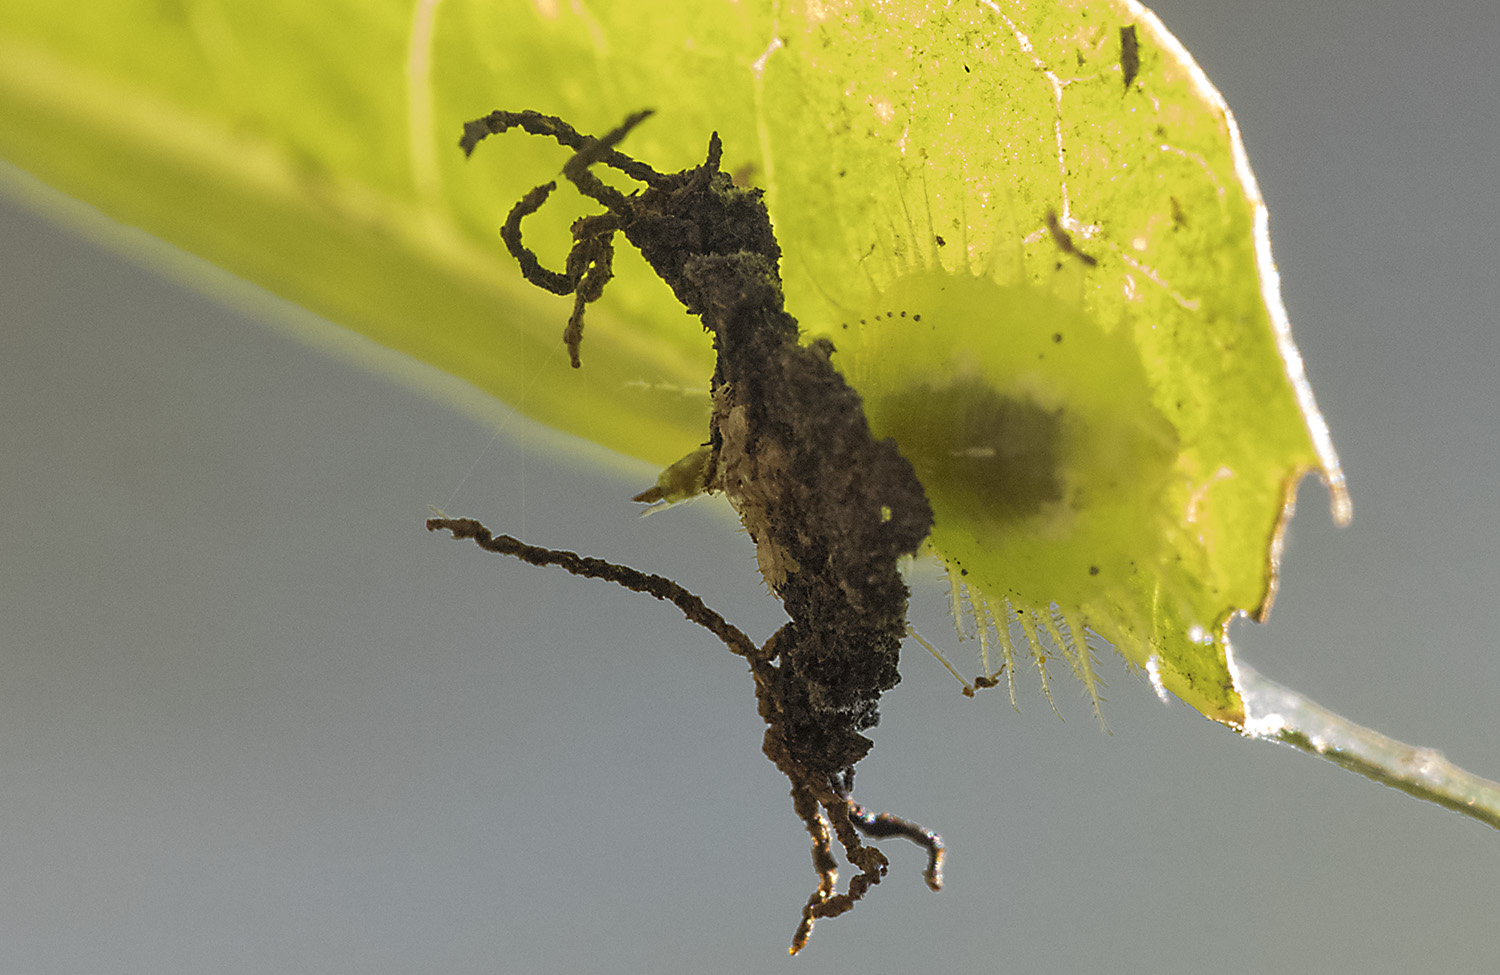 An insect that uses its own feces to build a statue of